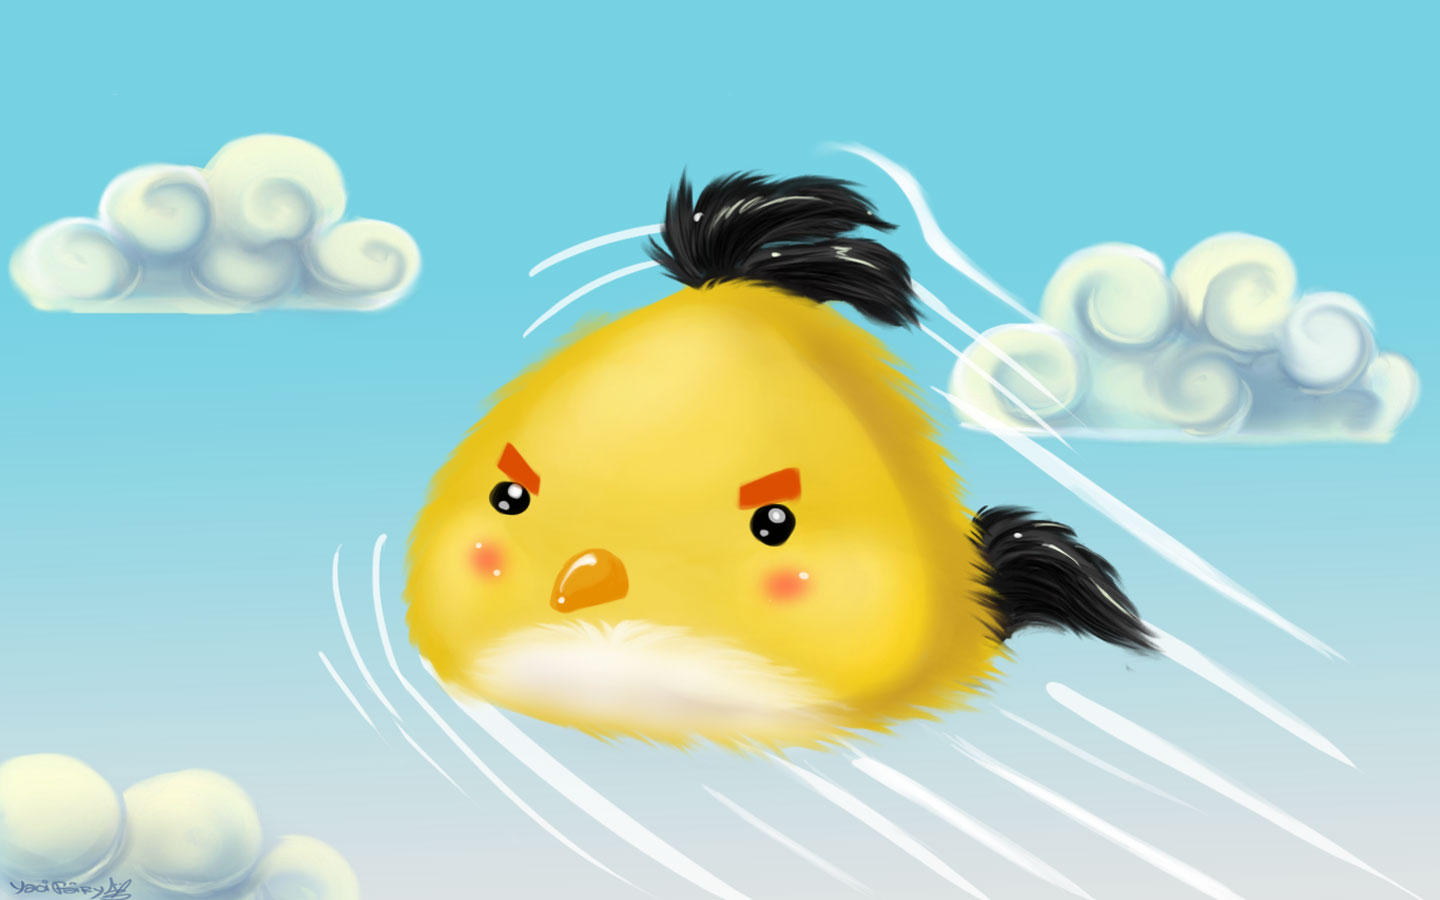 http://1.bp.blogspot.com/-Wk3zOB75TWM/T6eYLvnZ5NI/AAAAAAAABN8/FqsSLKx-im4/s1600/angry-birds-powerpoint-background-6.jpg